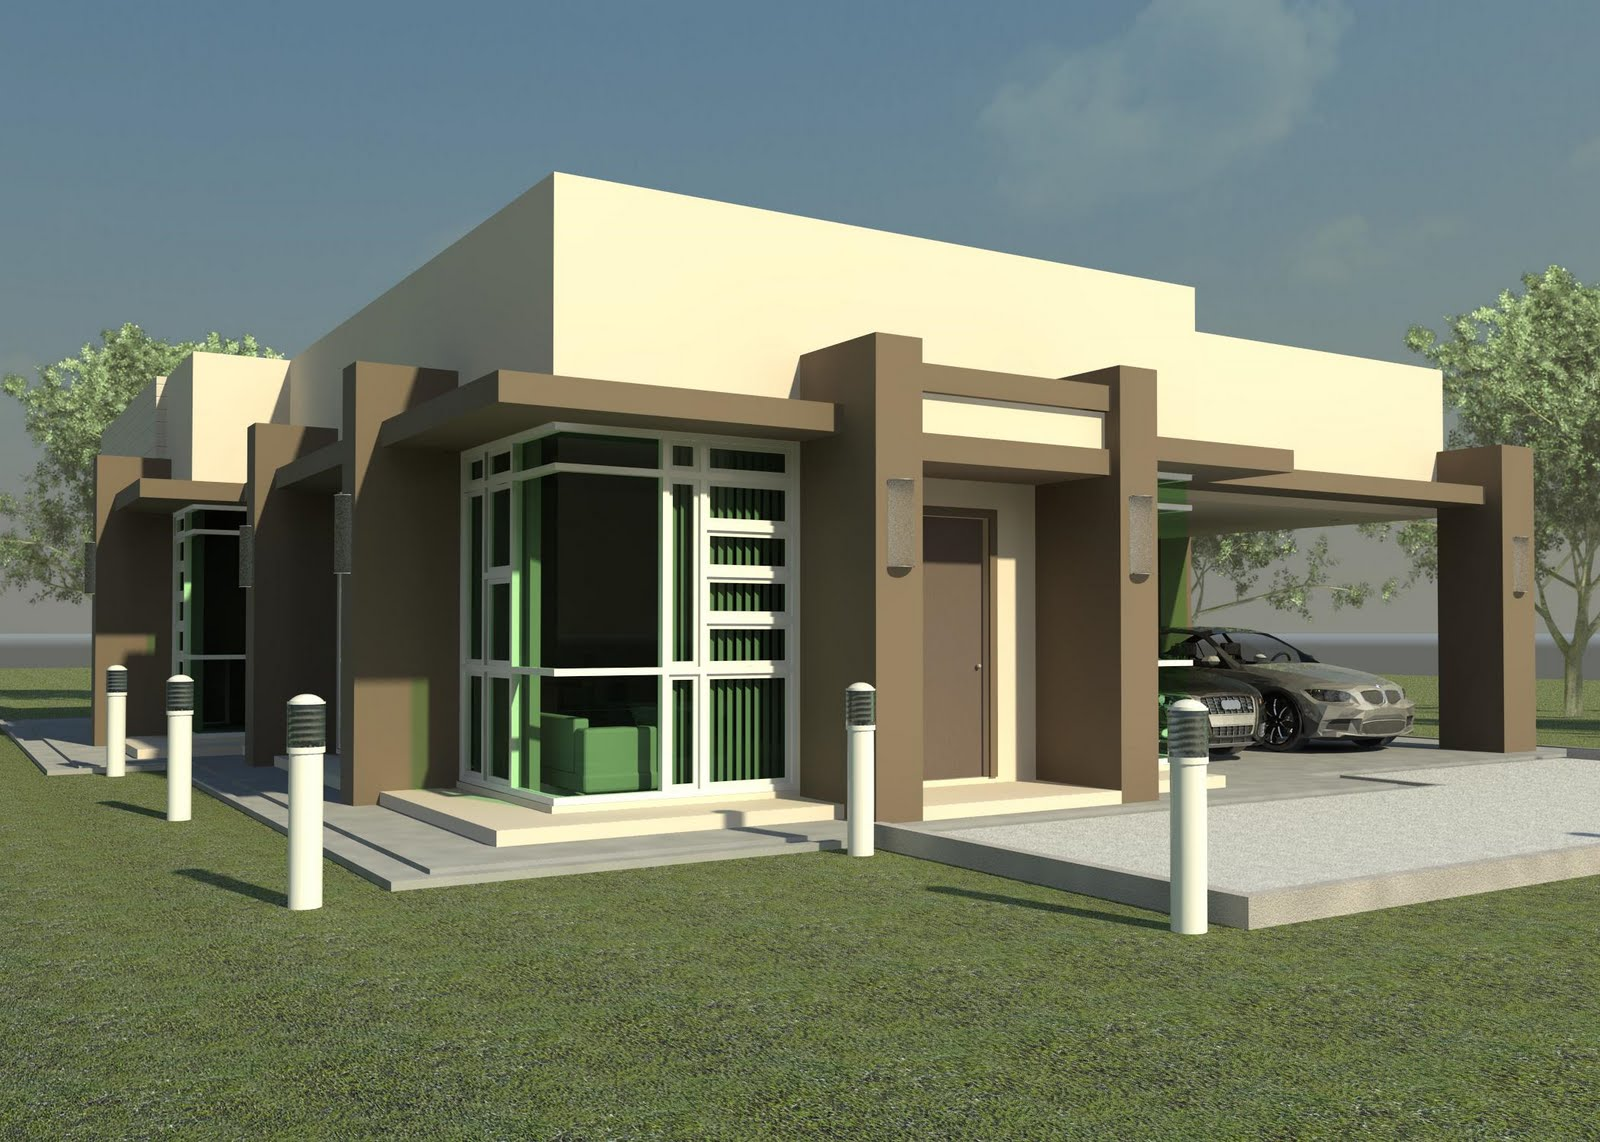 New home designs latest modern small homes designs exterior for Design the exterior of your home